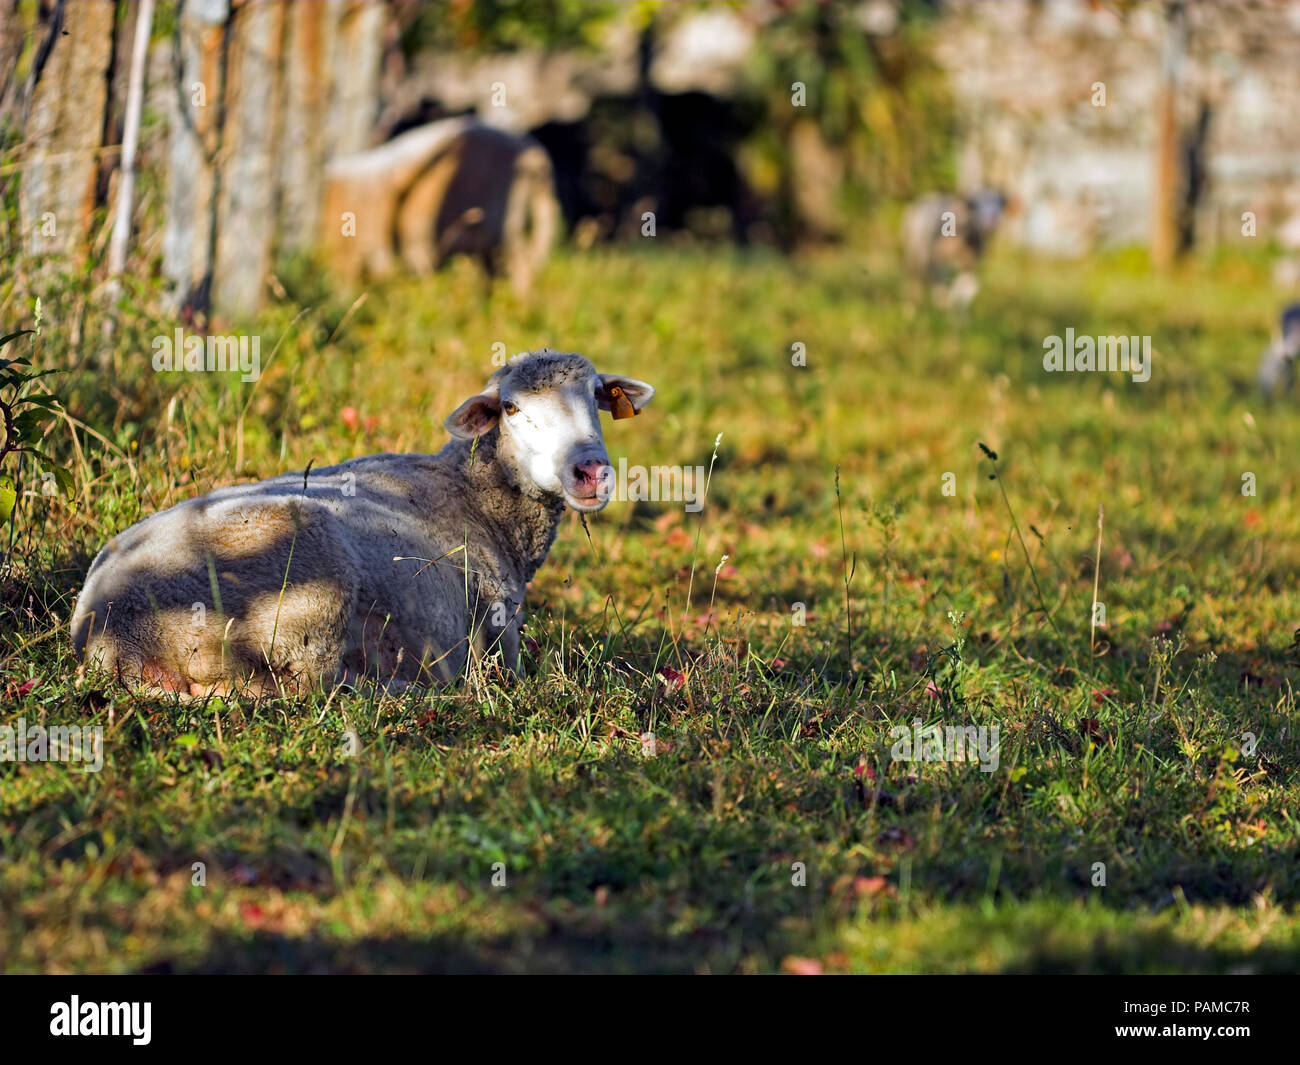 Sheep resting under a shadow in a farm in a hot sunny day - Stock Image